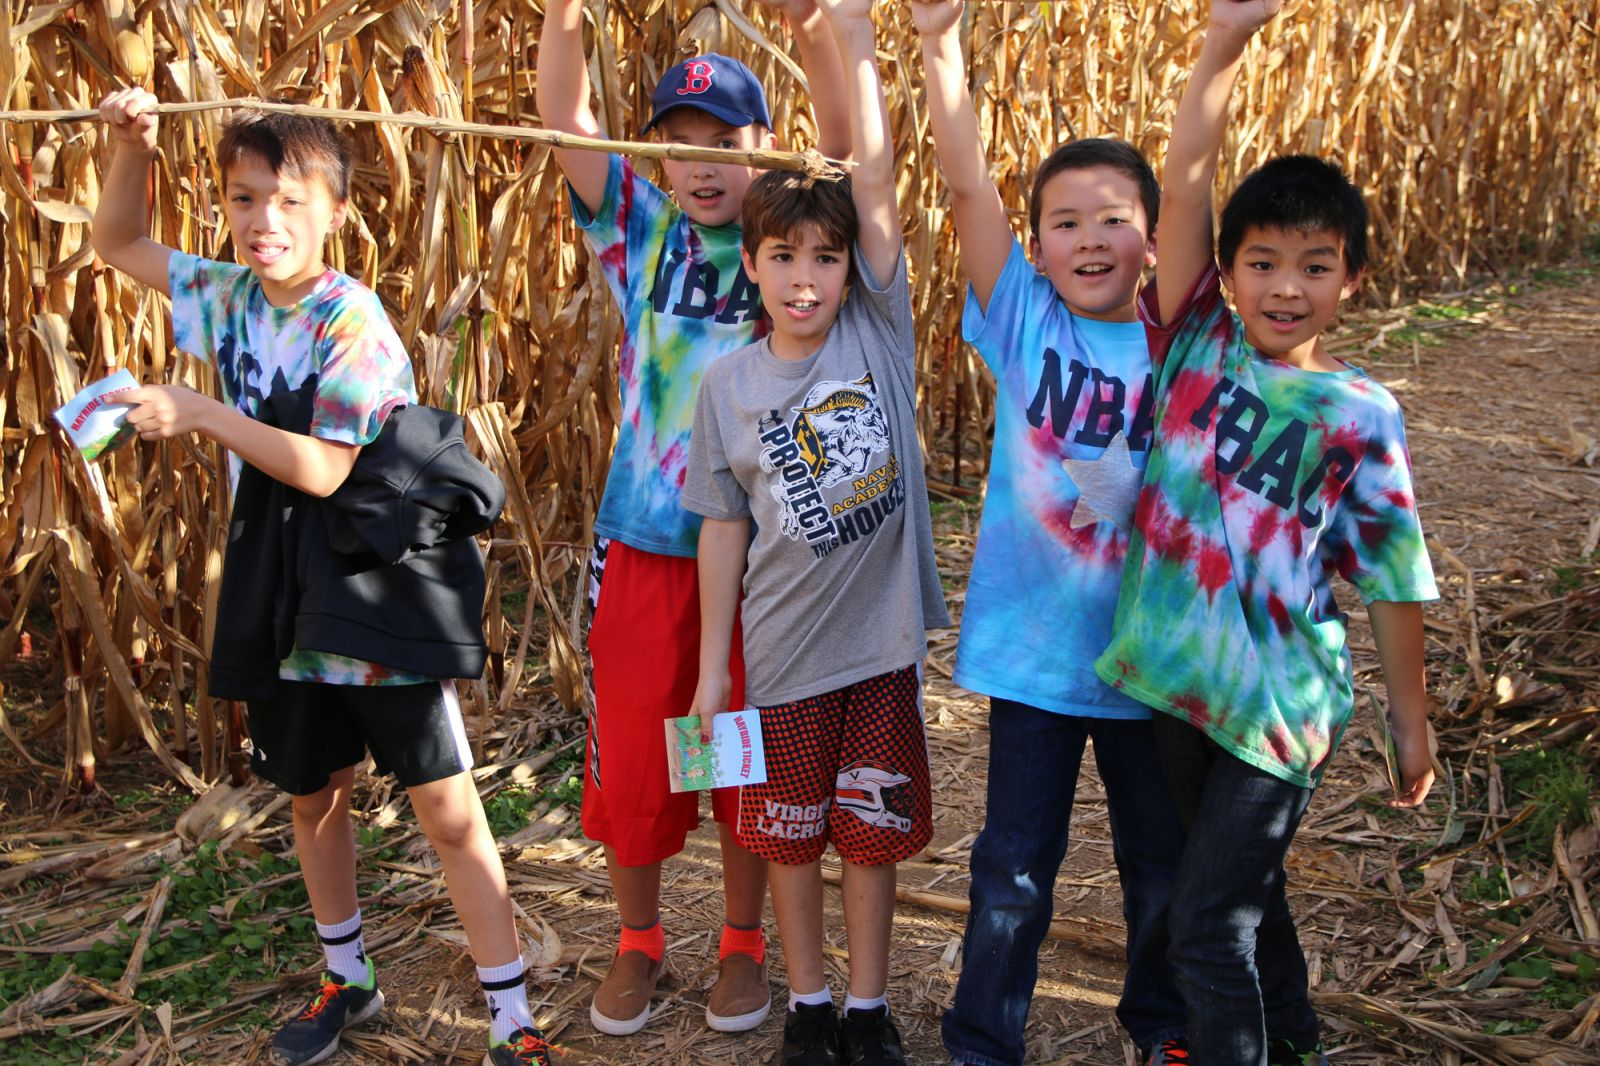 swimmers in the corn maze